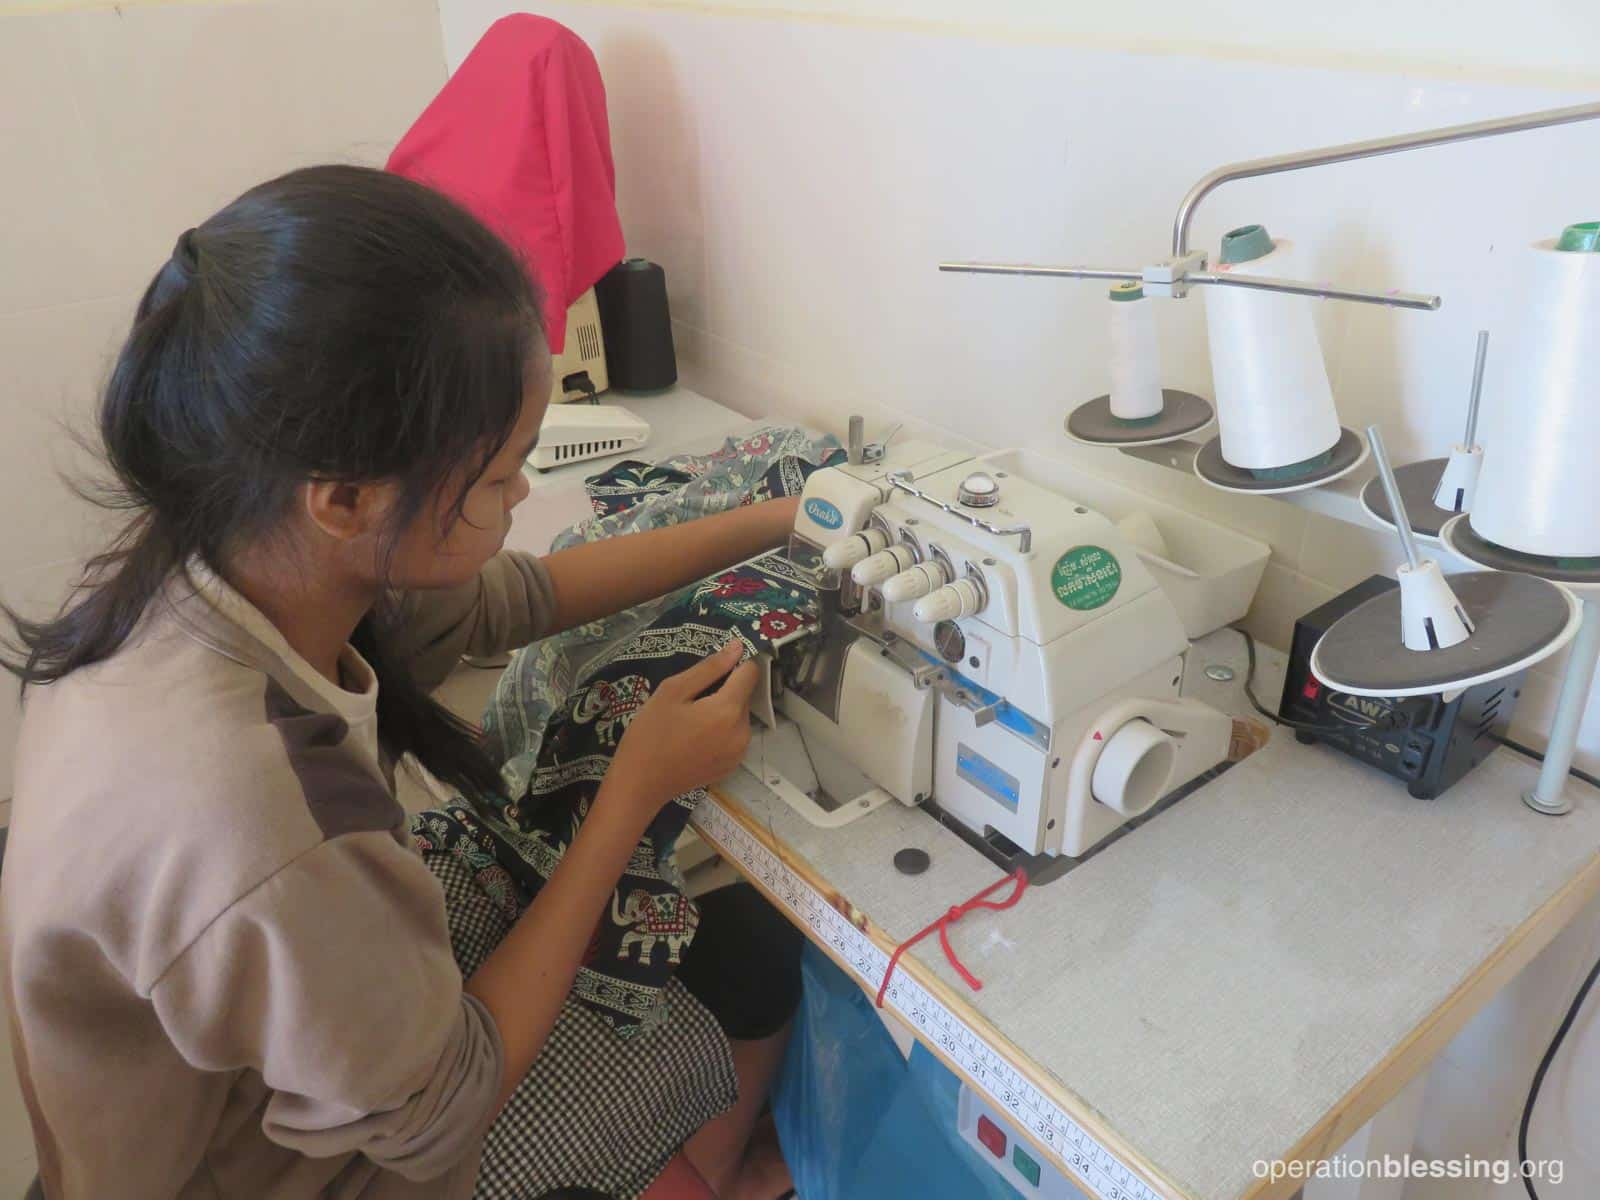 One of the girls works at a sewing machine as Operation Blessing and The Apple of God's Eyes help her weave a new tapestry of hope for her life.